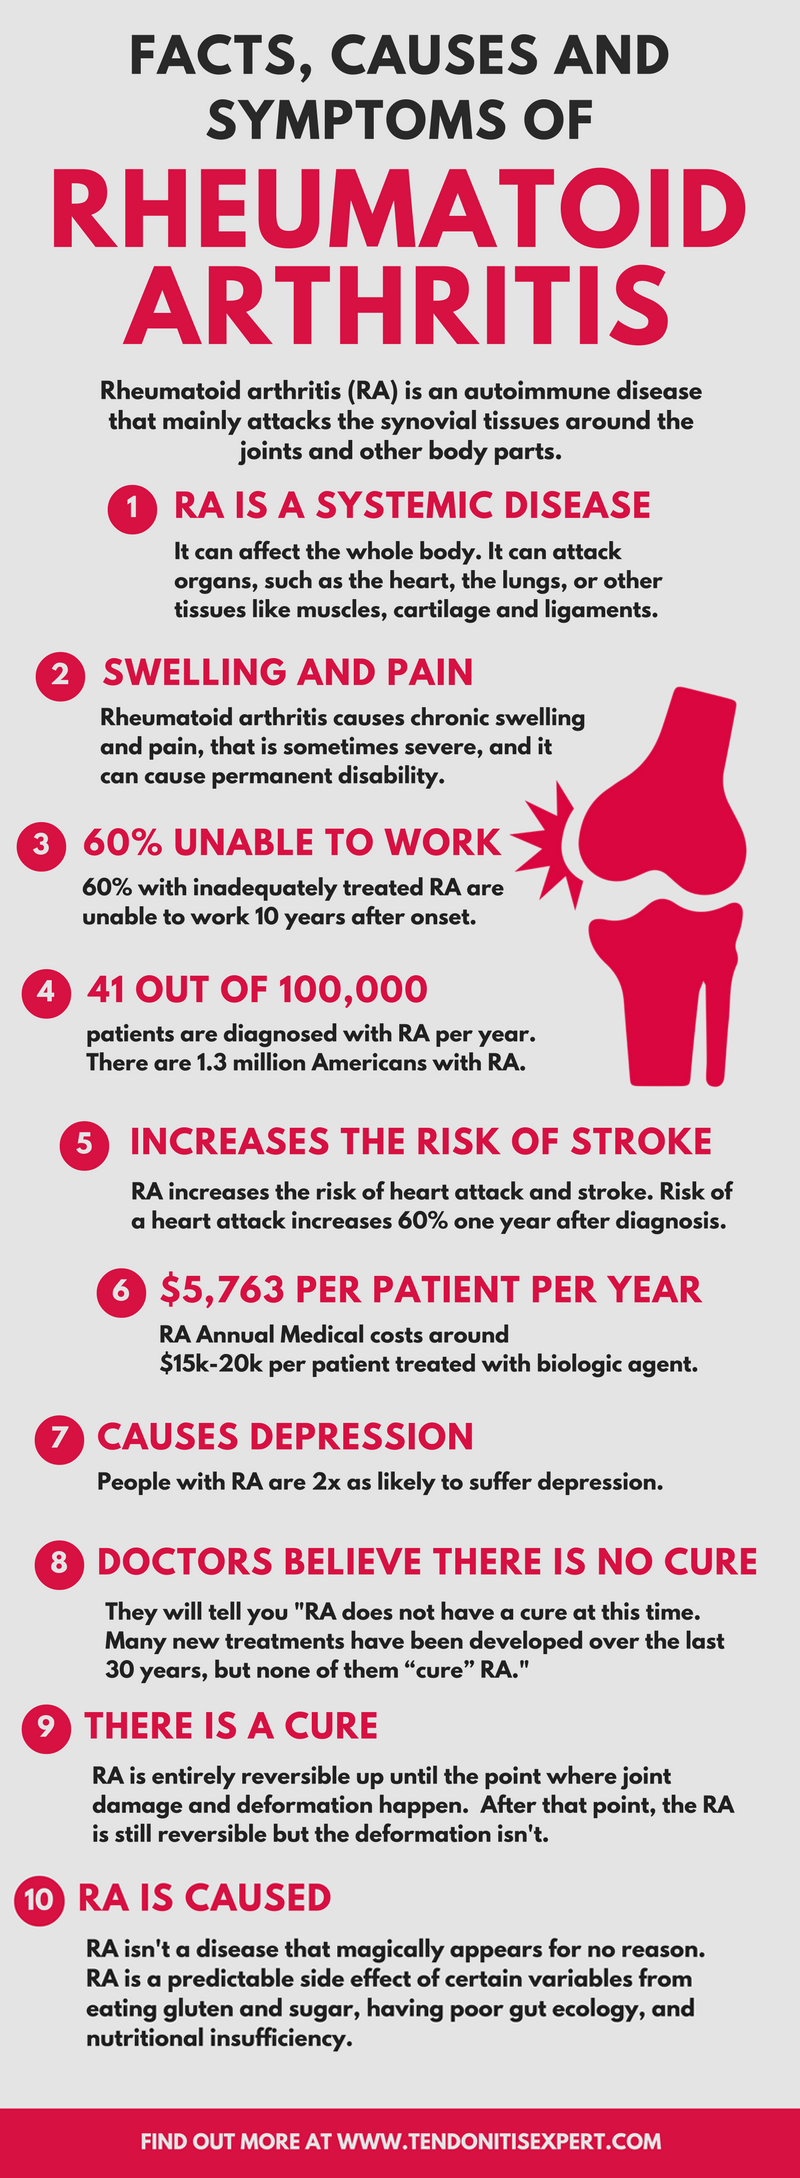 Infographic Facts Causes Symptoms Of Rheumatoid Arthritis   www.TendonitisExpert.com/rheumatoid-arthritis-symptoms.html